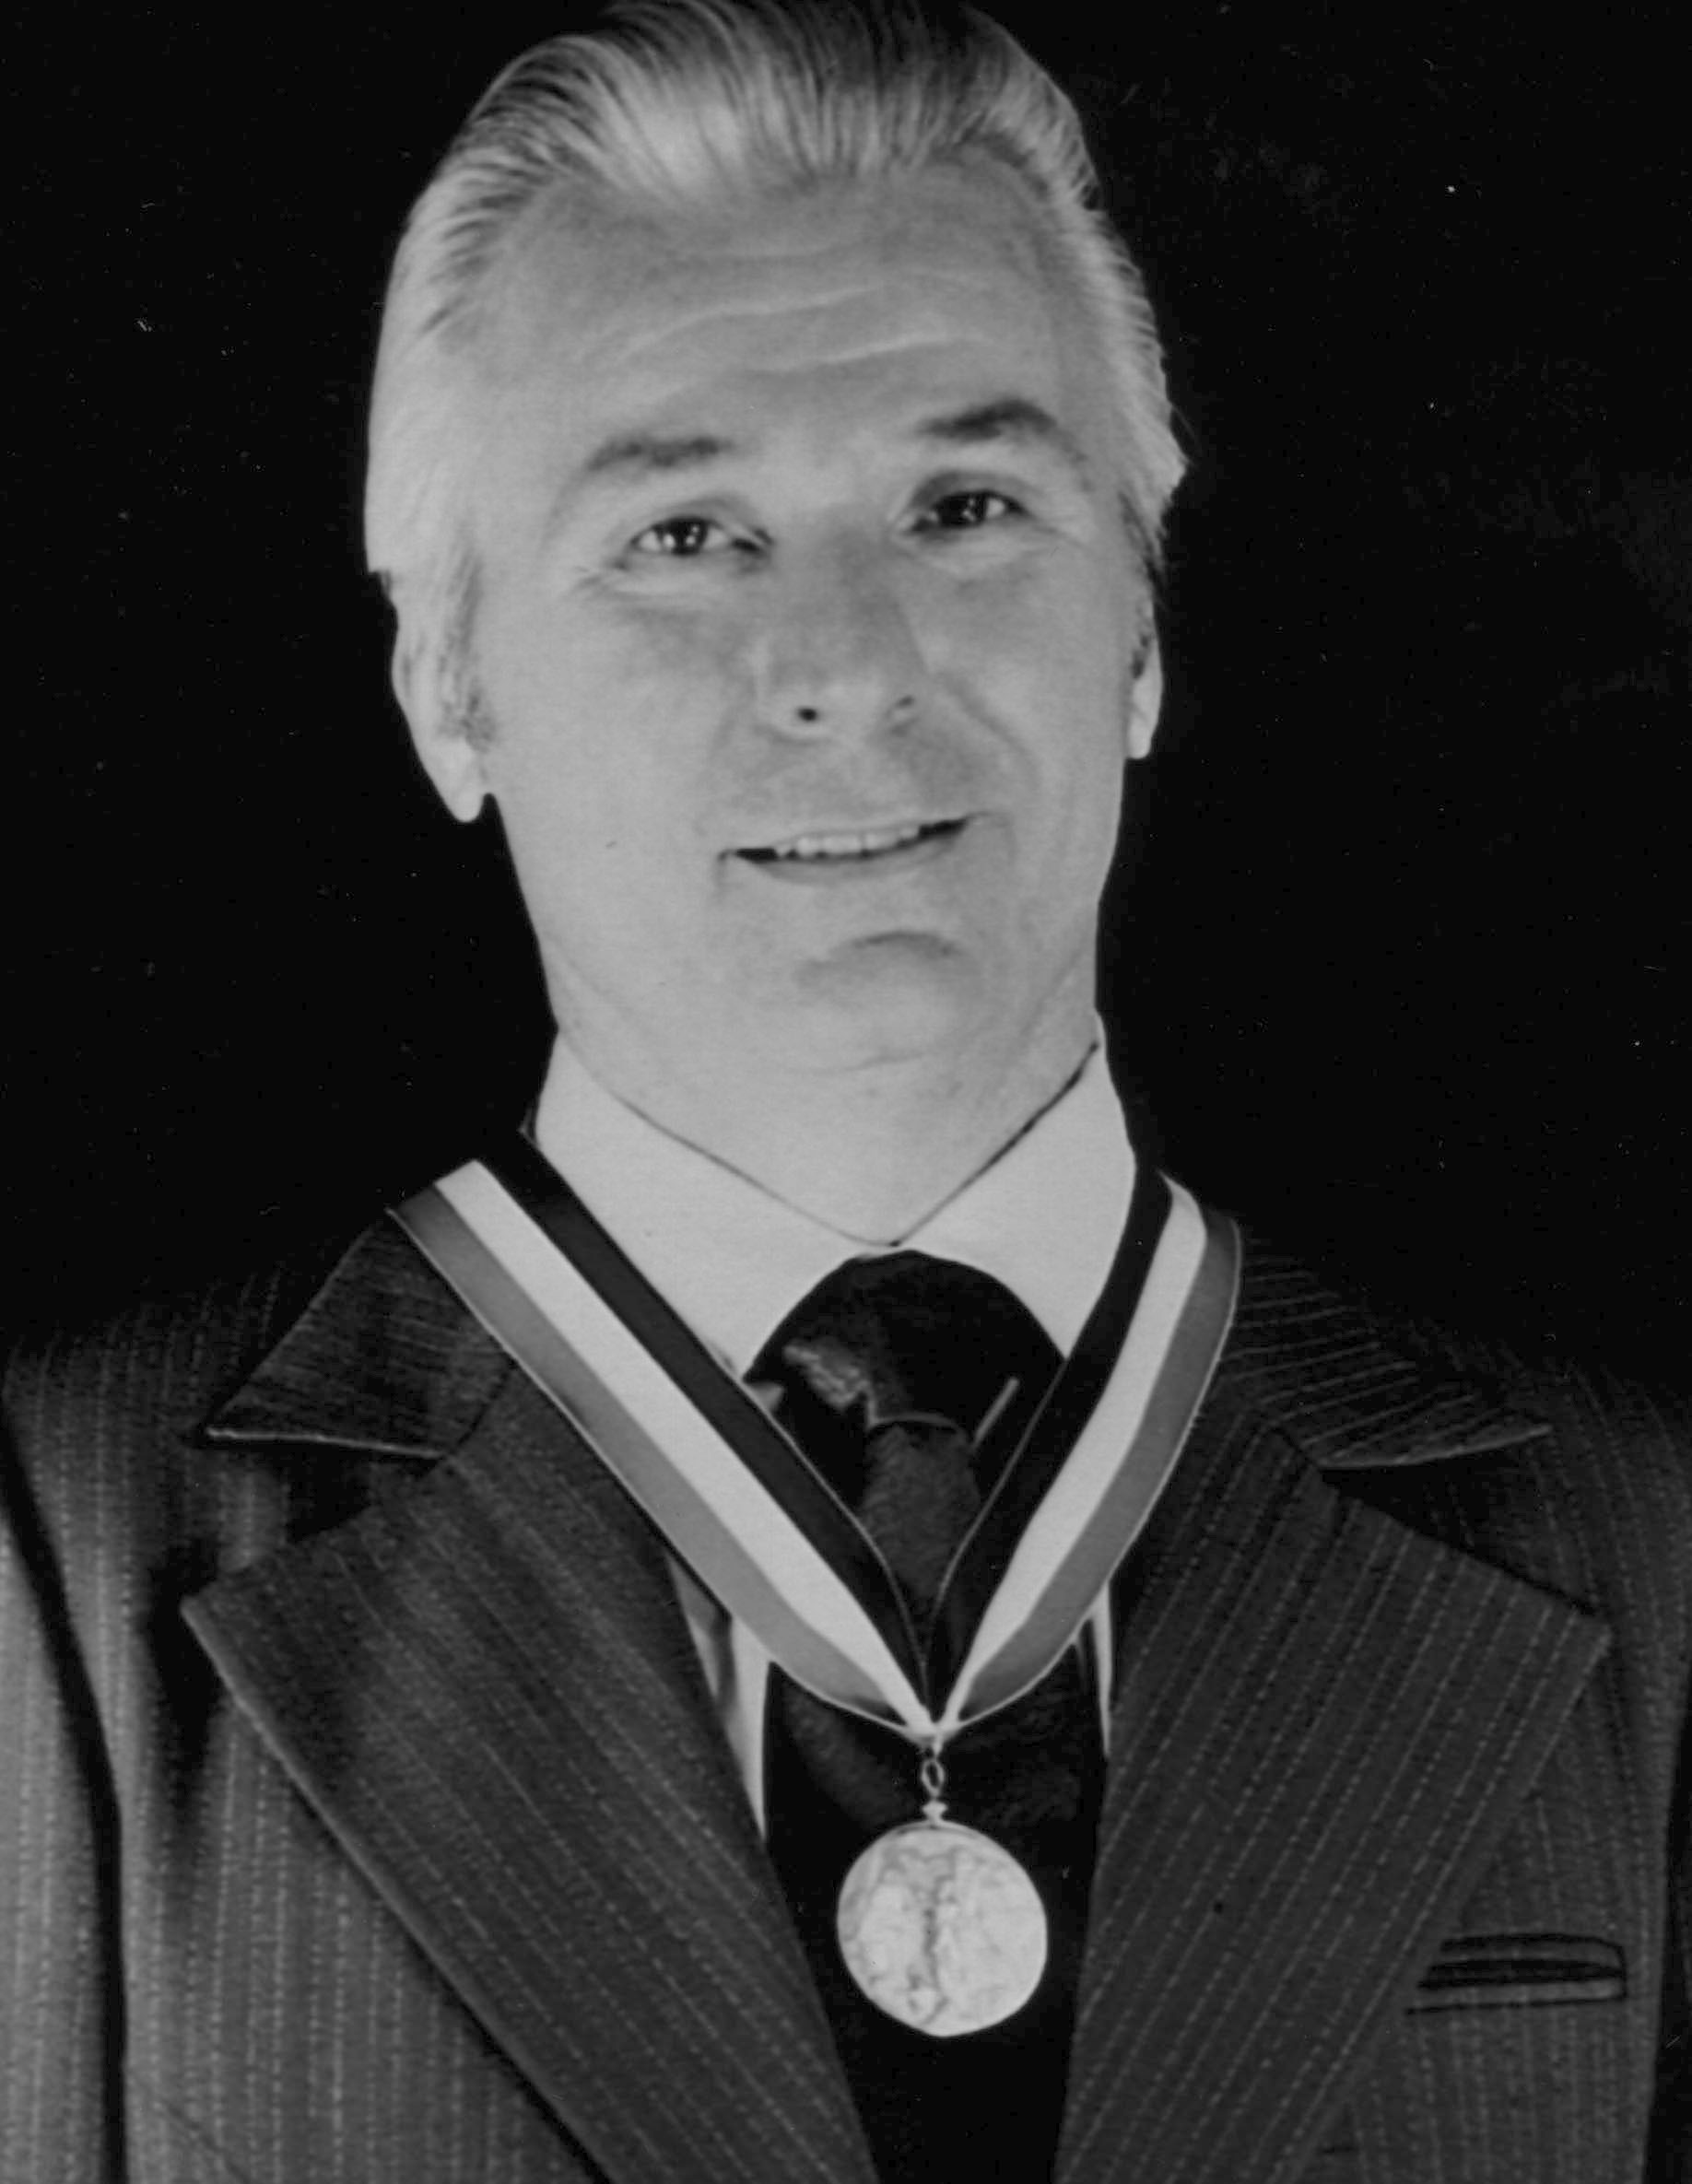 Elgen wears the FAI Gold Air Medal